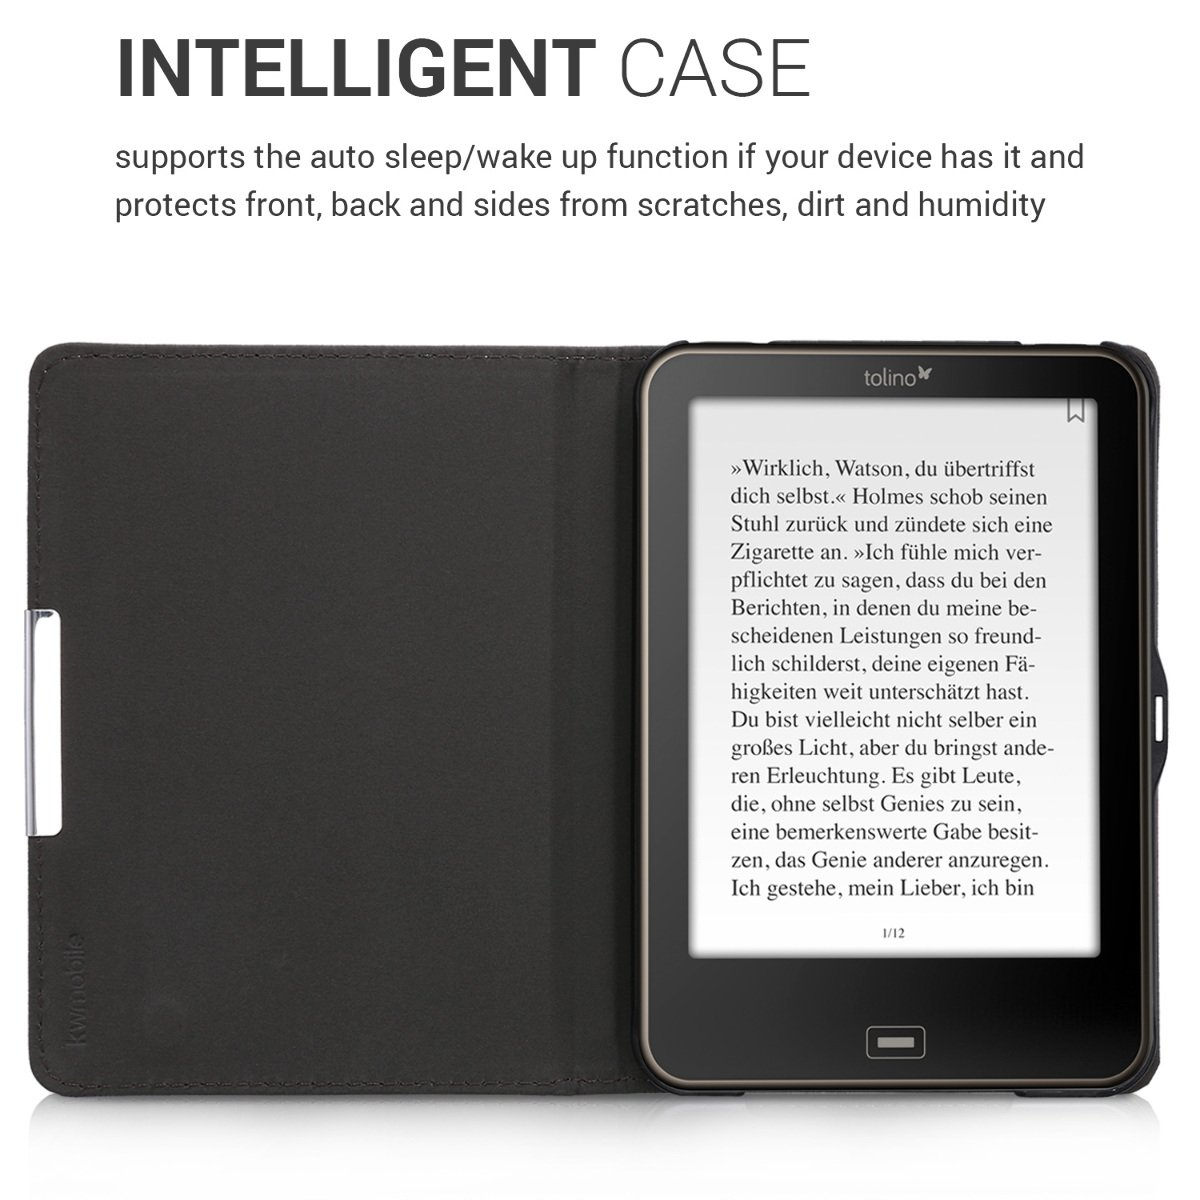 kwmobile Case for Tolino Shine 2 HD - Book Style PU Leather Protective e-Reader Cover Folio Case - white black by kwmobile (Image #5)